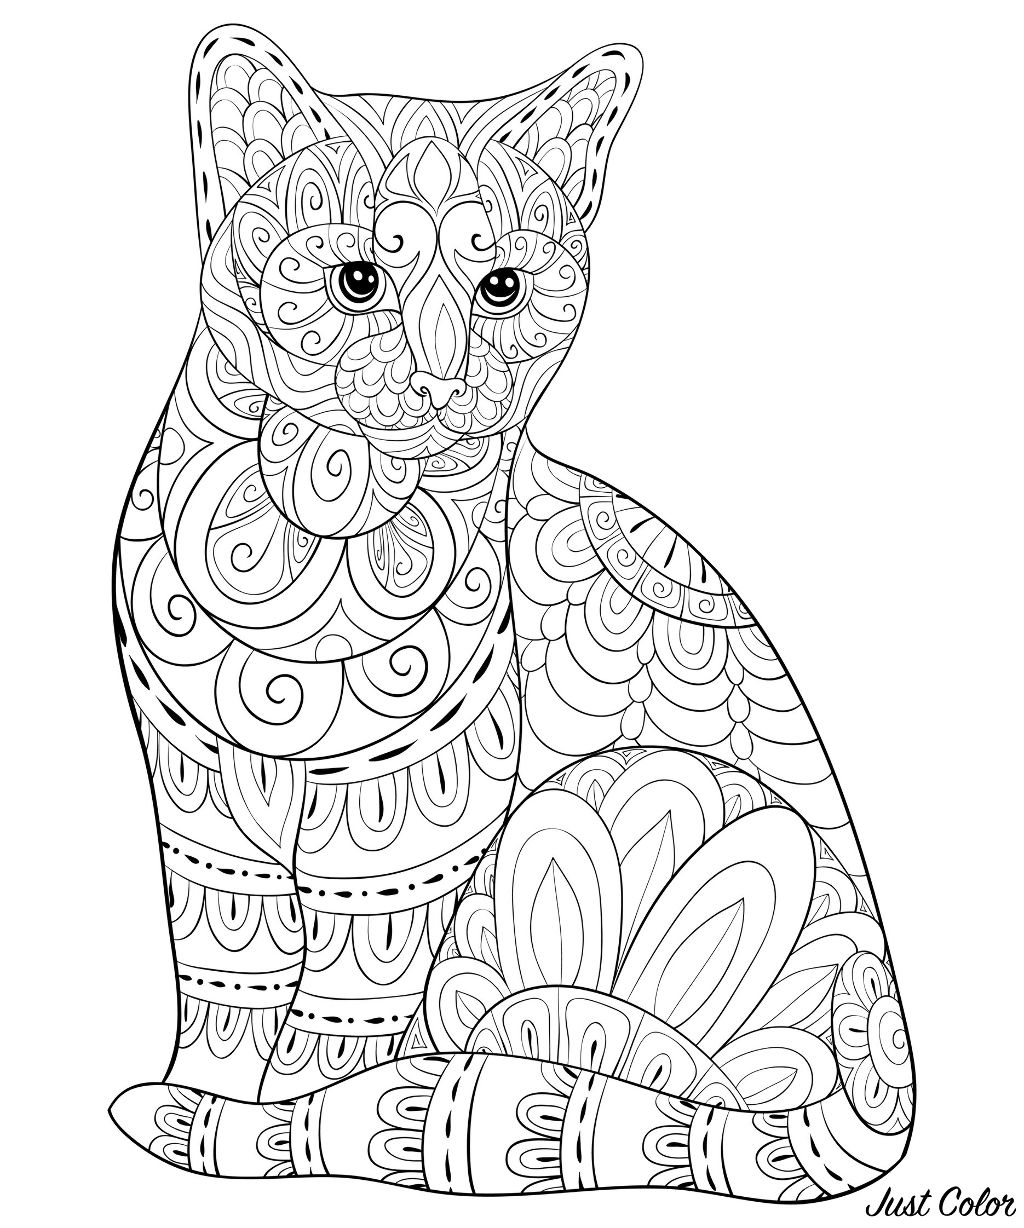 A cute cat with zen ornaments for adults for relaxing activity. Simple Zentangle patterns